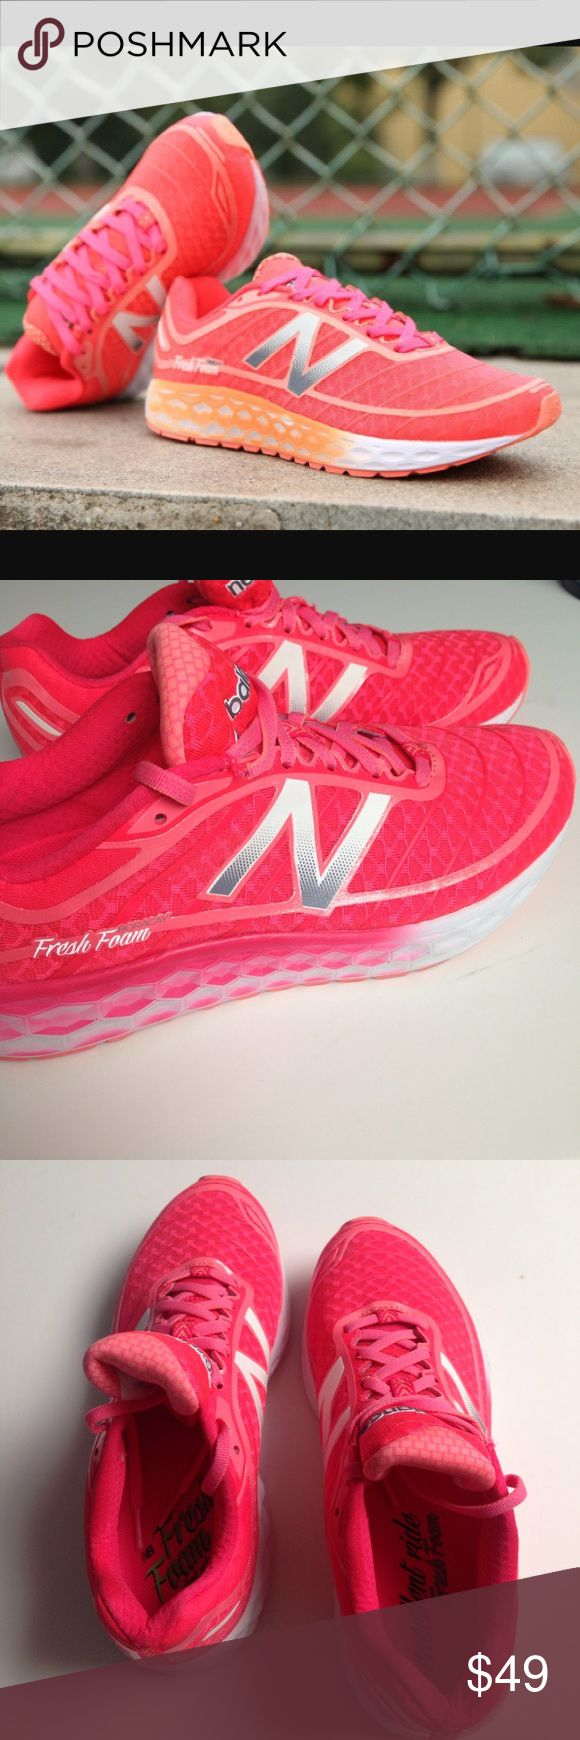 New Balance neon coral  Fresh Foam sneakers Super bright and fun neon coral and pink Fresh Foam sneakers from New Balance. WORN ONCE! Coral colored sneakers with sparkle glitter accent lining all around shoe, pink laces and pink fade on the textured sides.Tread is in new condition! Are basically brand new! Size 8.5 New Balance Shoes Sneakers